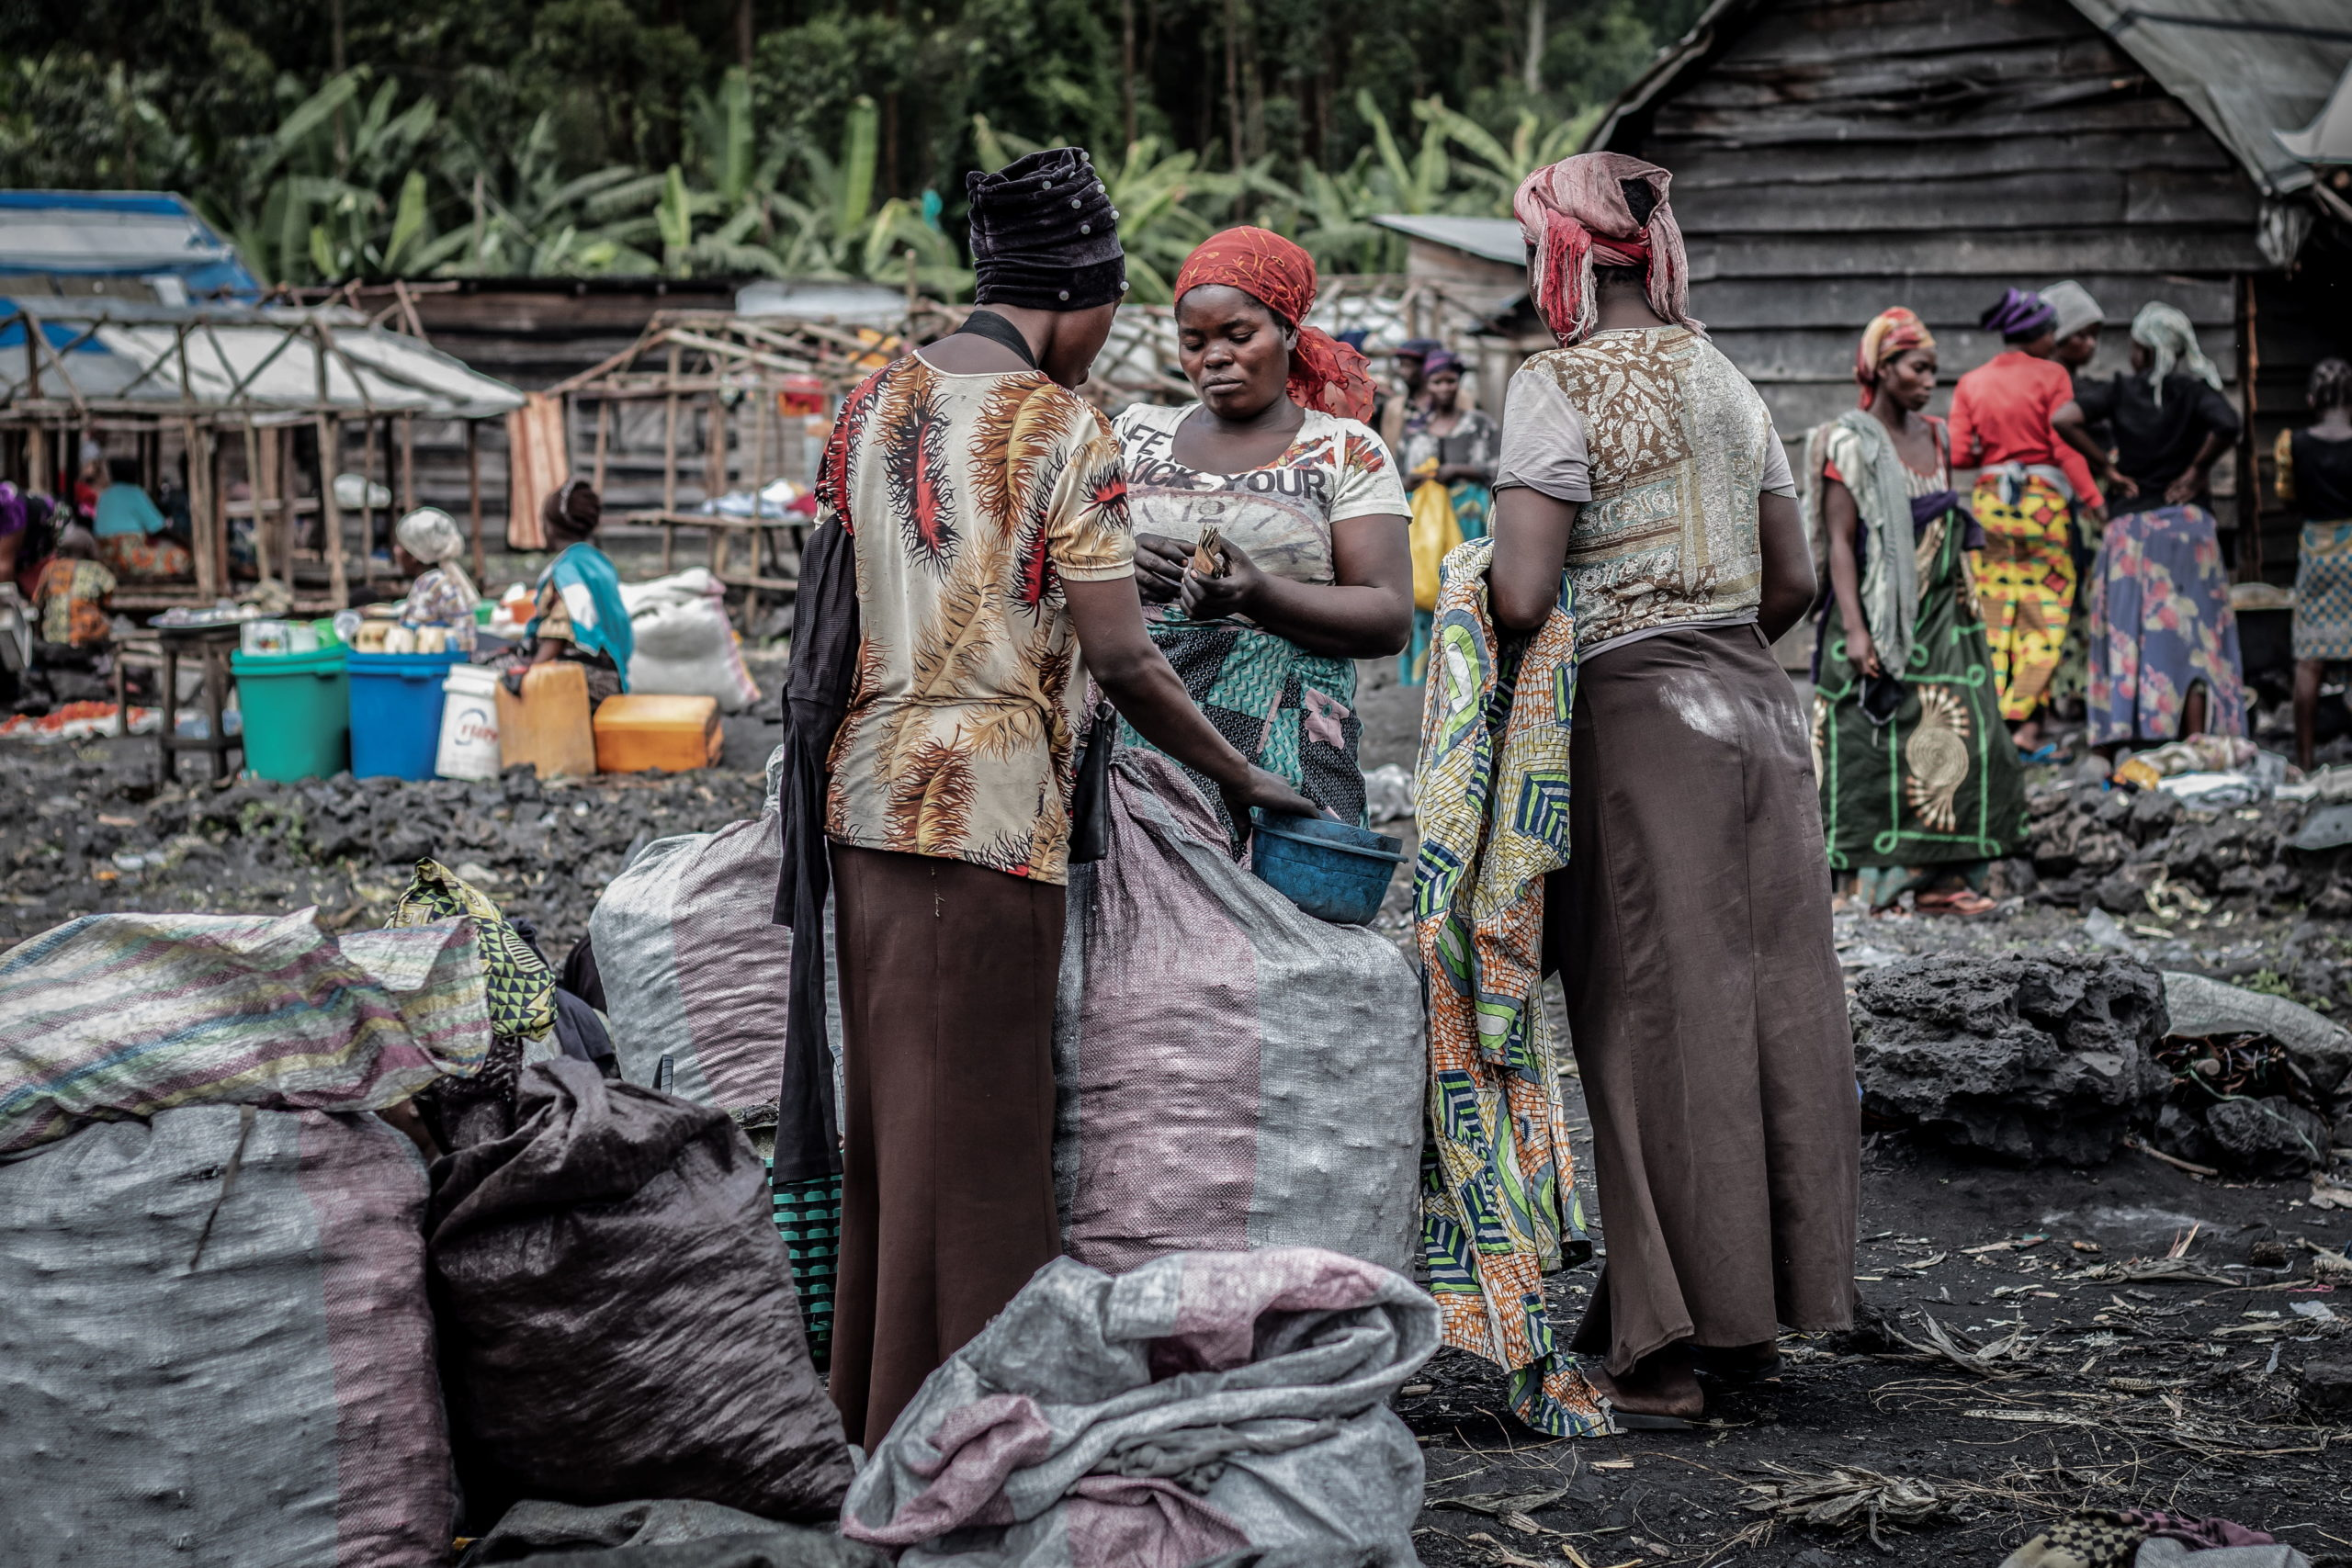 Virunga National Park, DRC, December 2020. Charcoal traders at Kulupango market on the edge of Virunga National Park just north of the eastern Congolese city of Goma. © Guerchom Ndebo for Fondation Carmignac